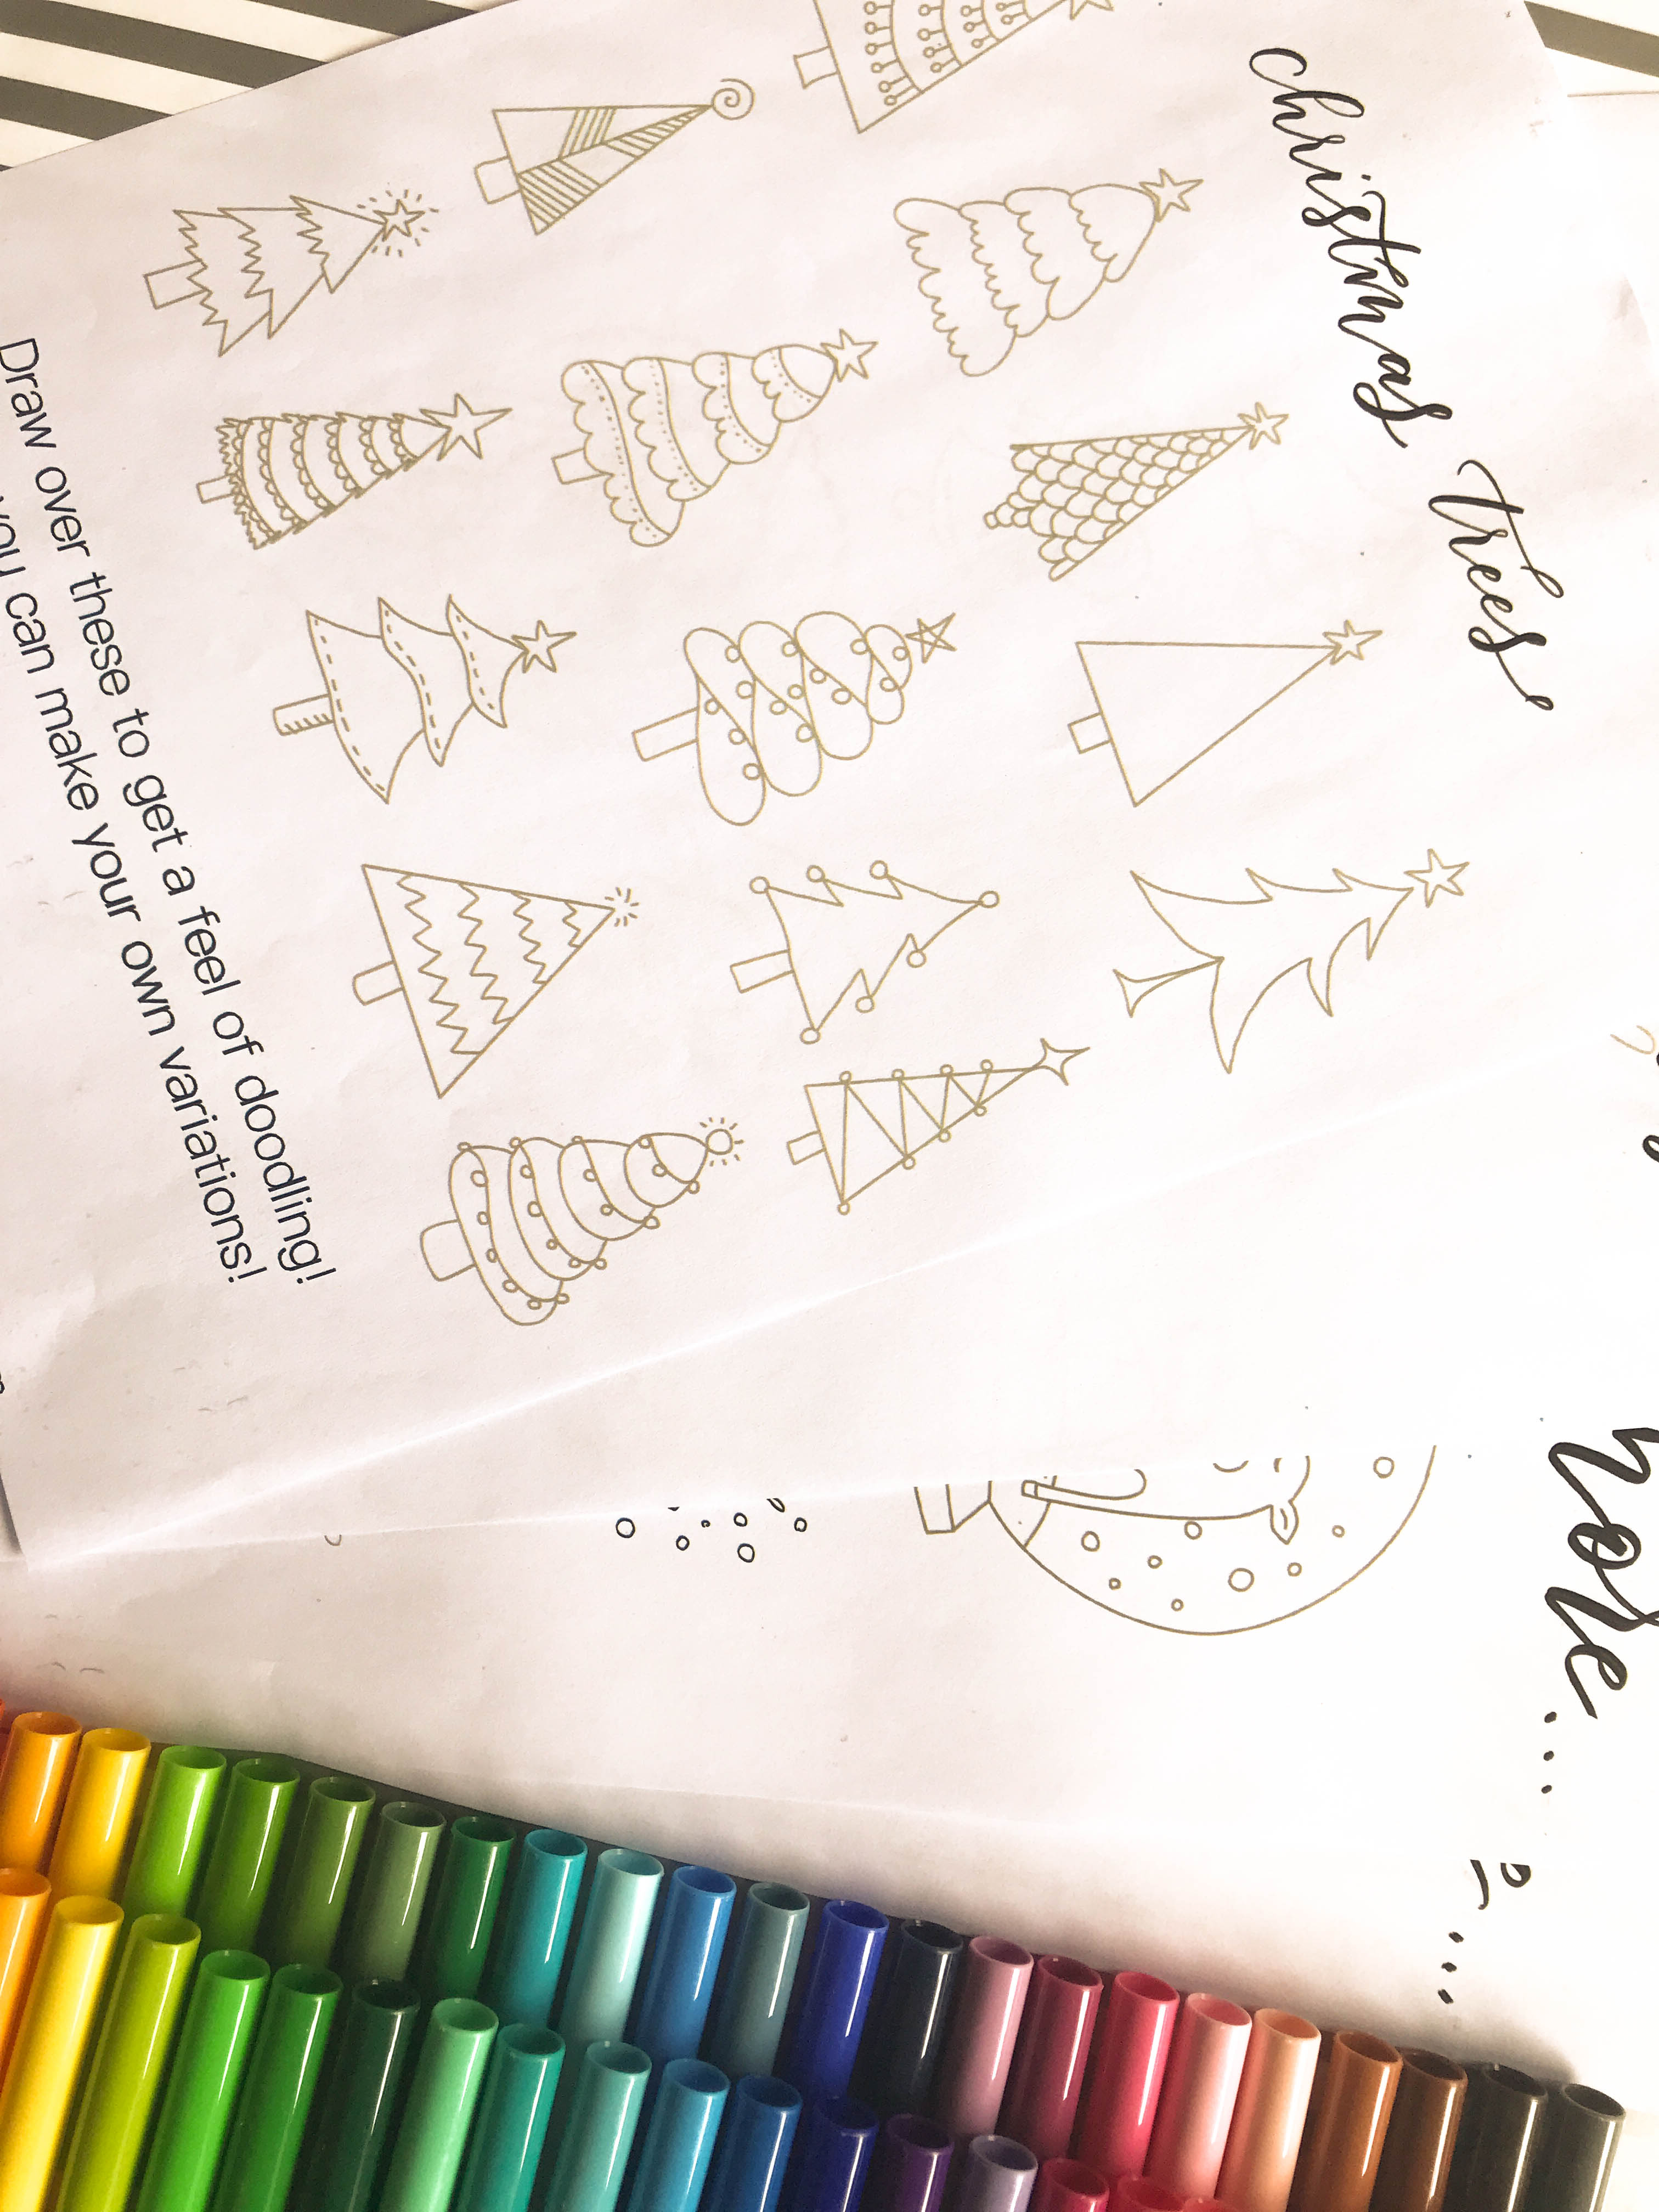 Five Holiday T Ideas With Mixbook Free Christmas Doodles Worksheet Surely Simple